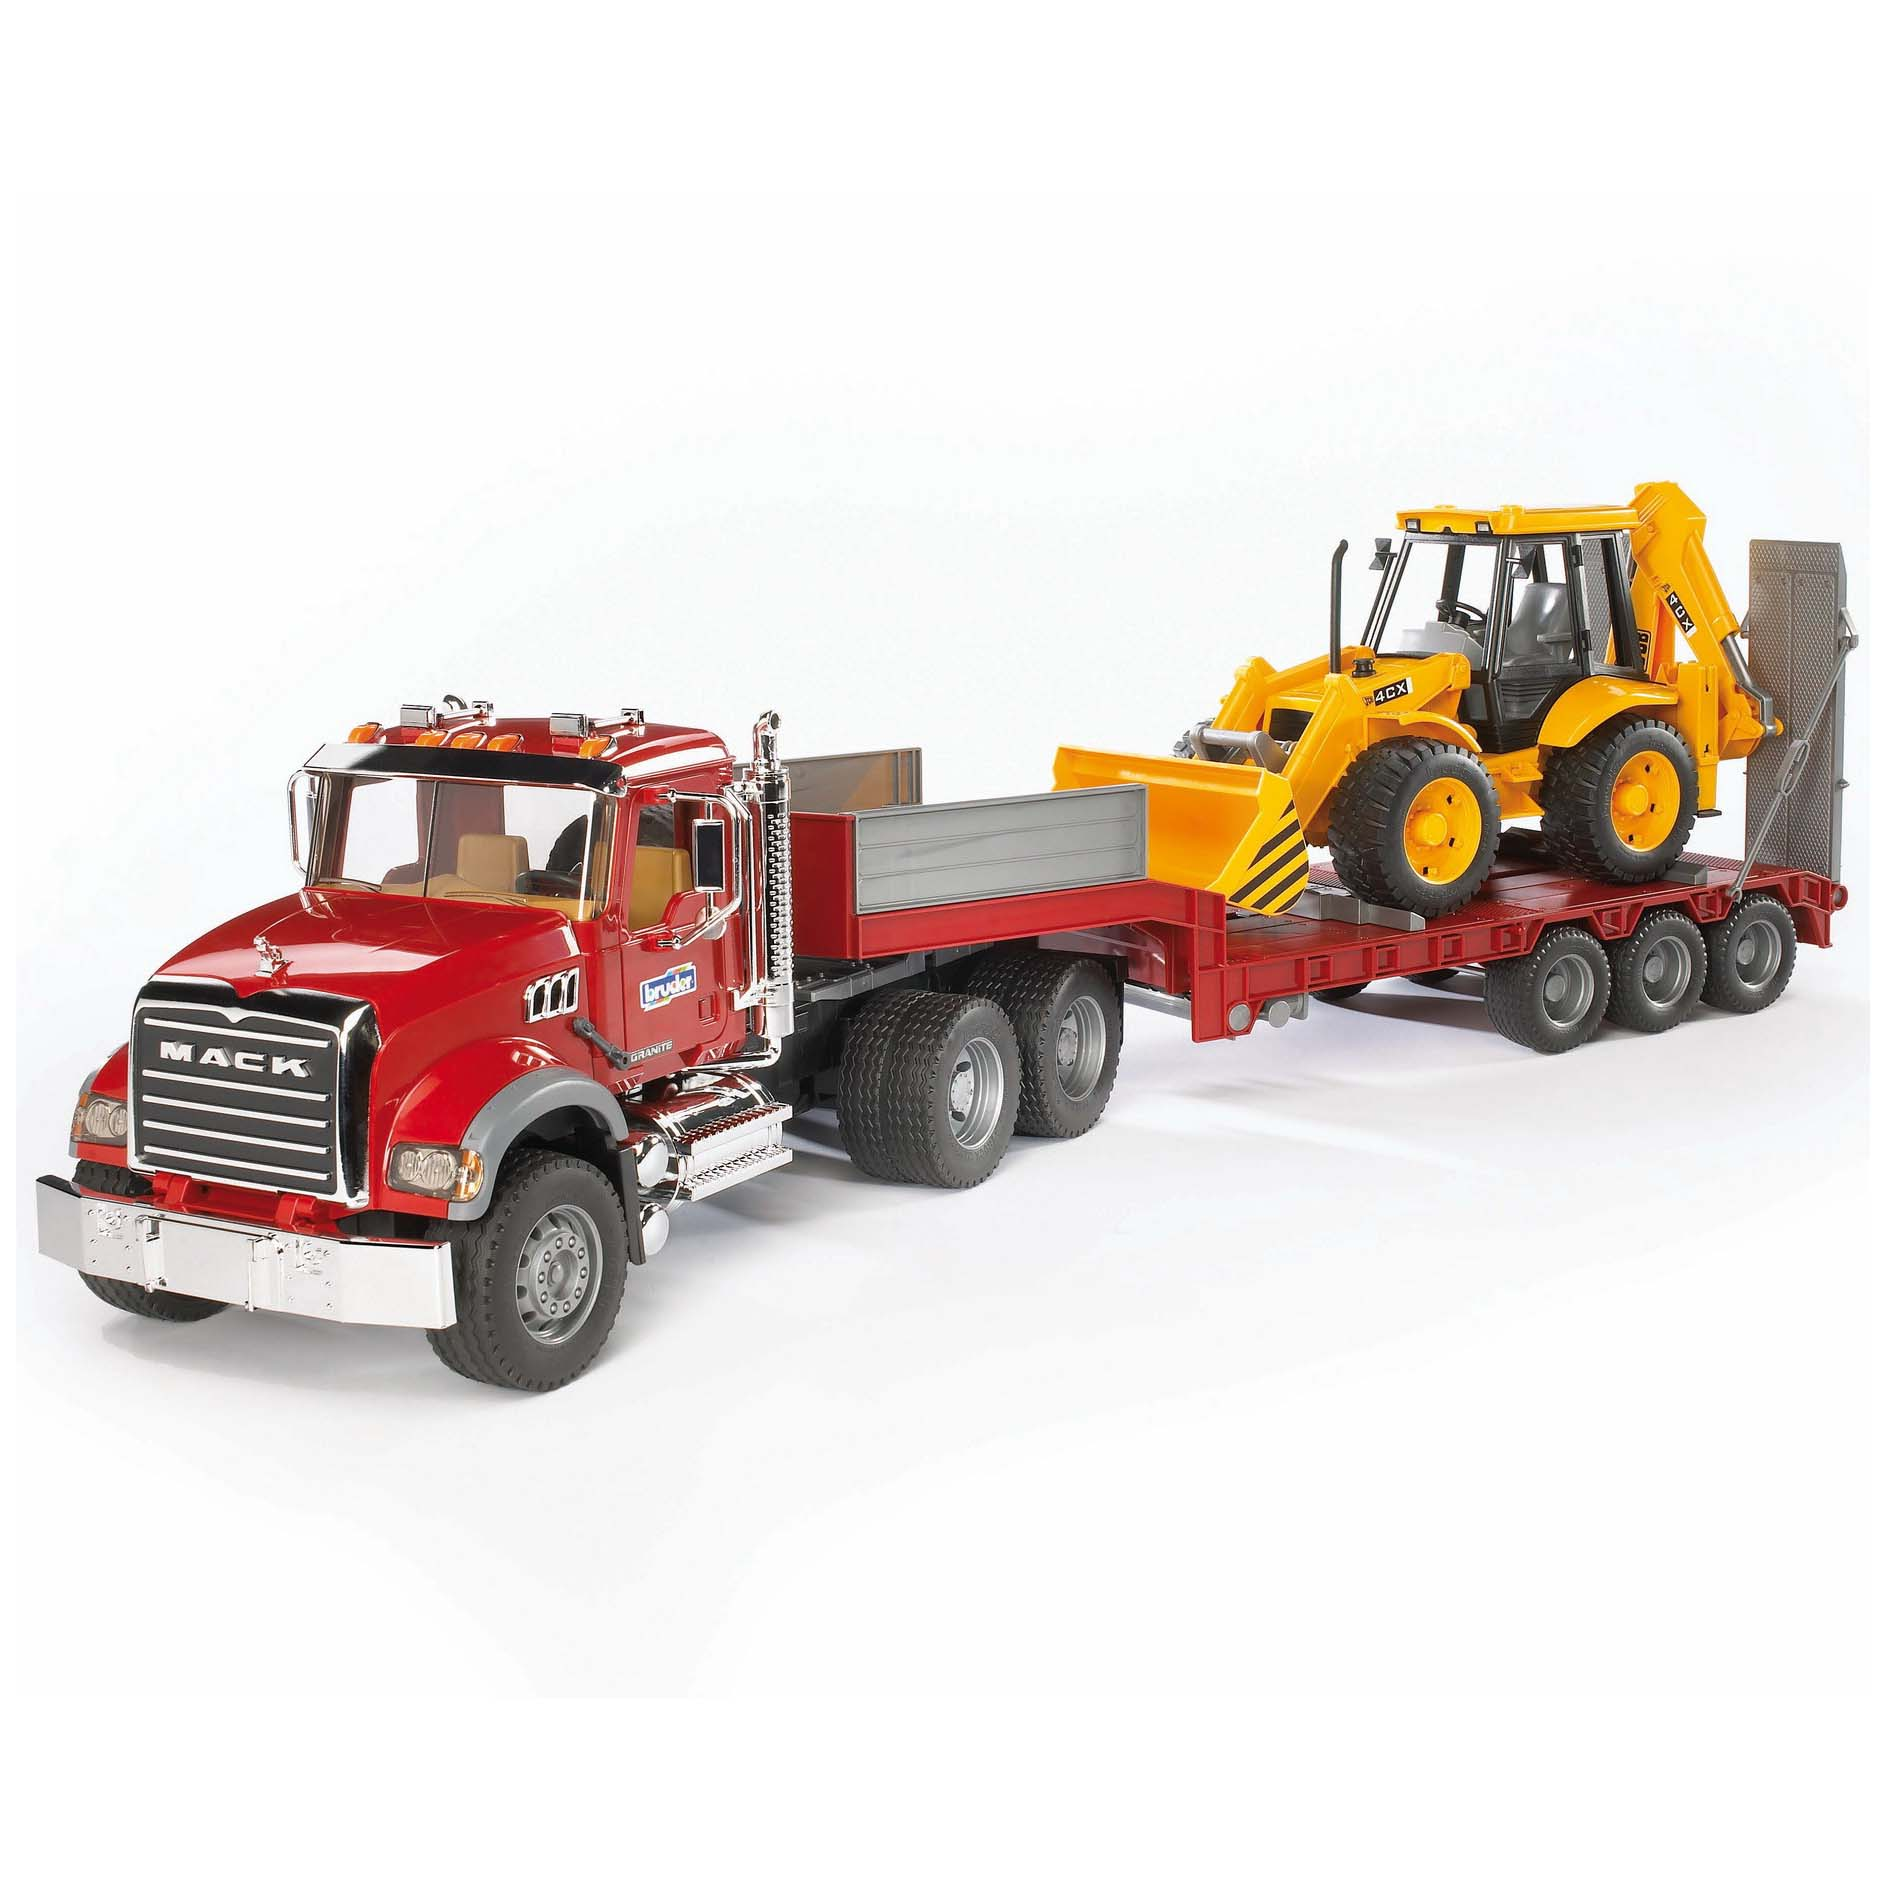 Bruder Toys MACK Flatbed Truck with JCB Loader Backhoe